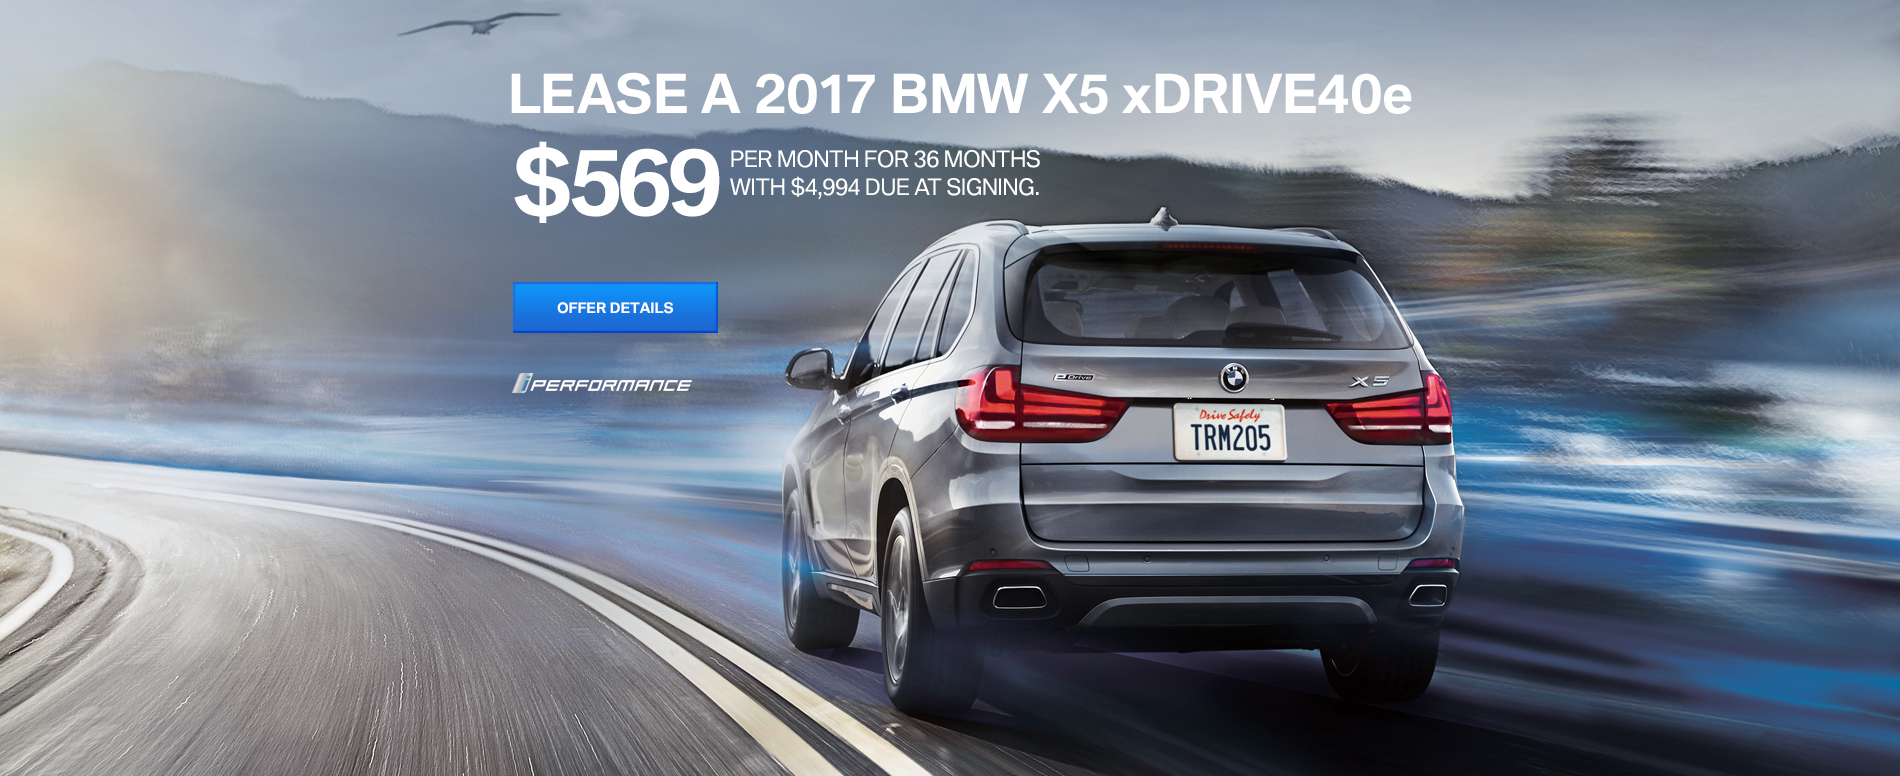 LEASE A 2017 X5 xDRIVE40e FOR $569/MO FOR 36 MONTHS, WITH $4,994